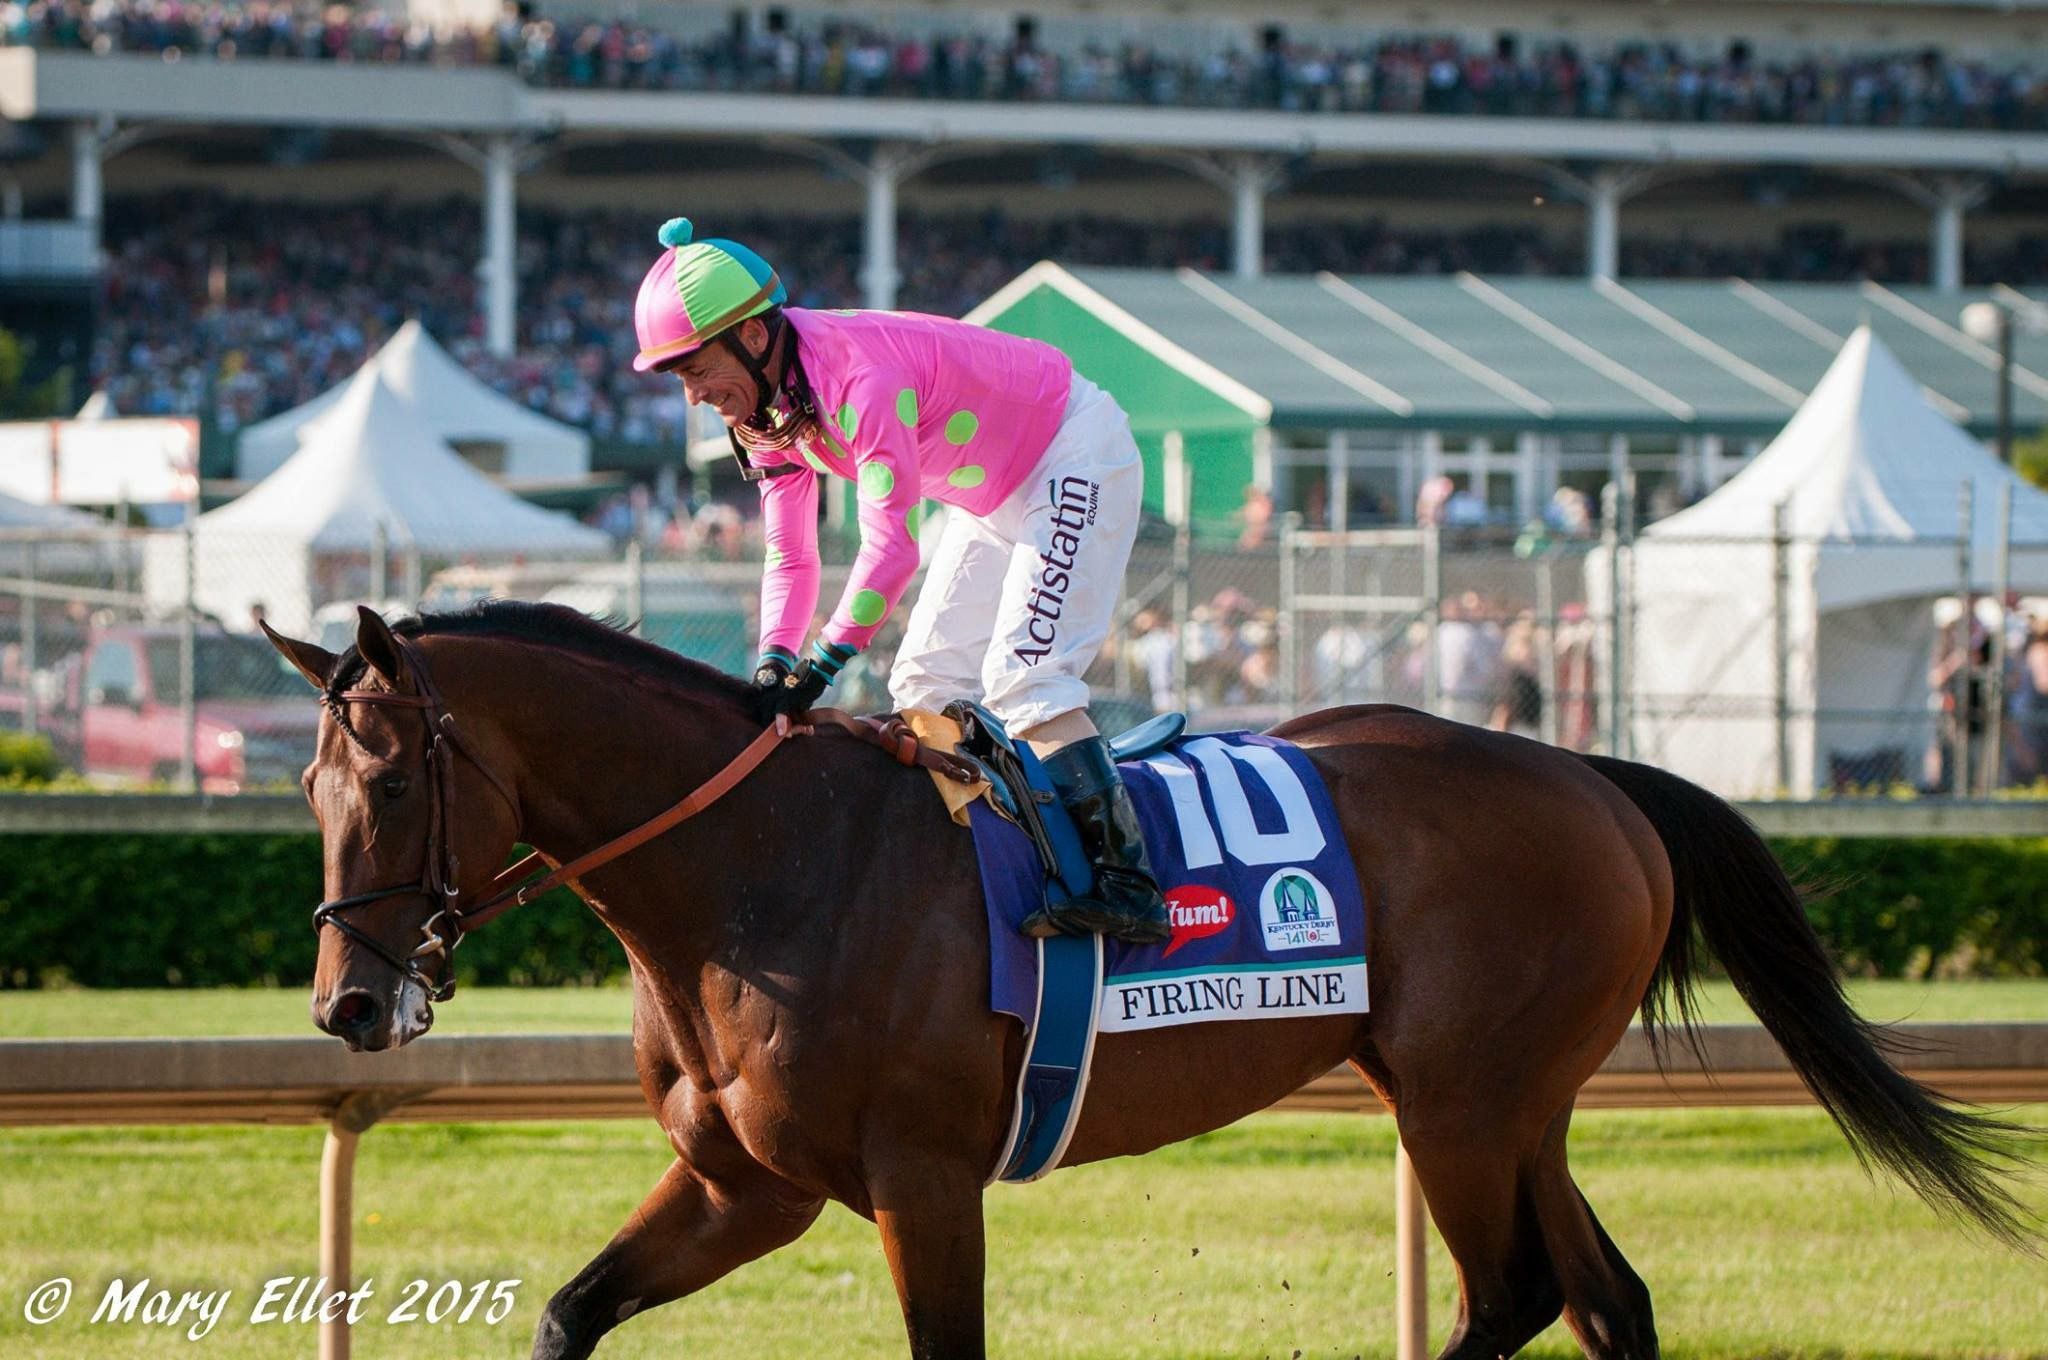 2015 Kentucky Derby Firing Line With His Jockey Gary Stevens Placed Second In The Derby 5 2 2015 Belmont Stakes Kentucky Derby Riding Helmets